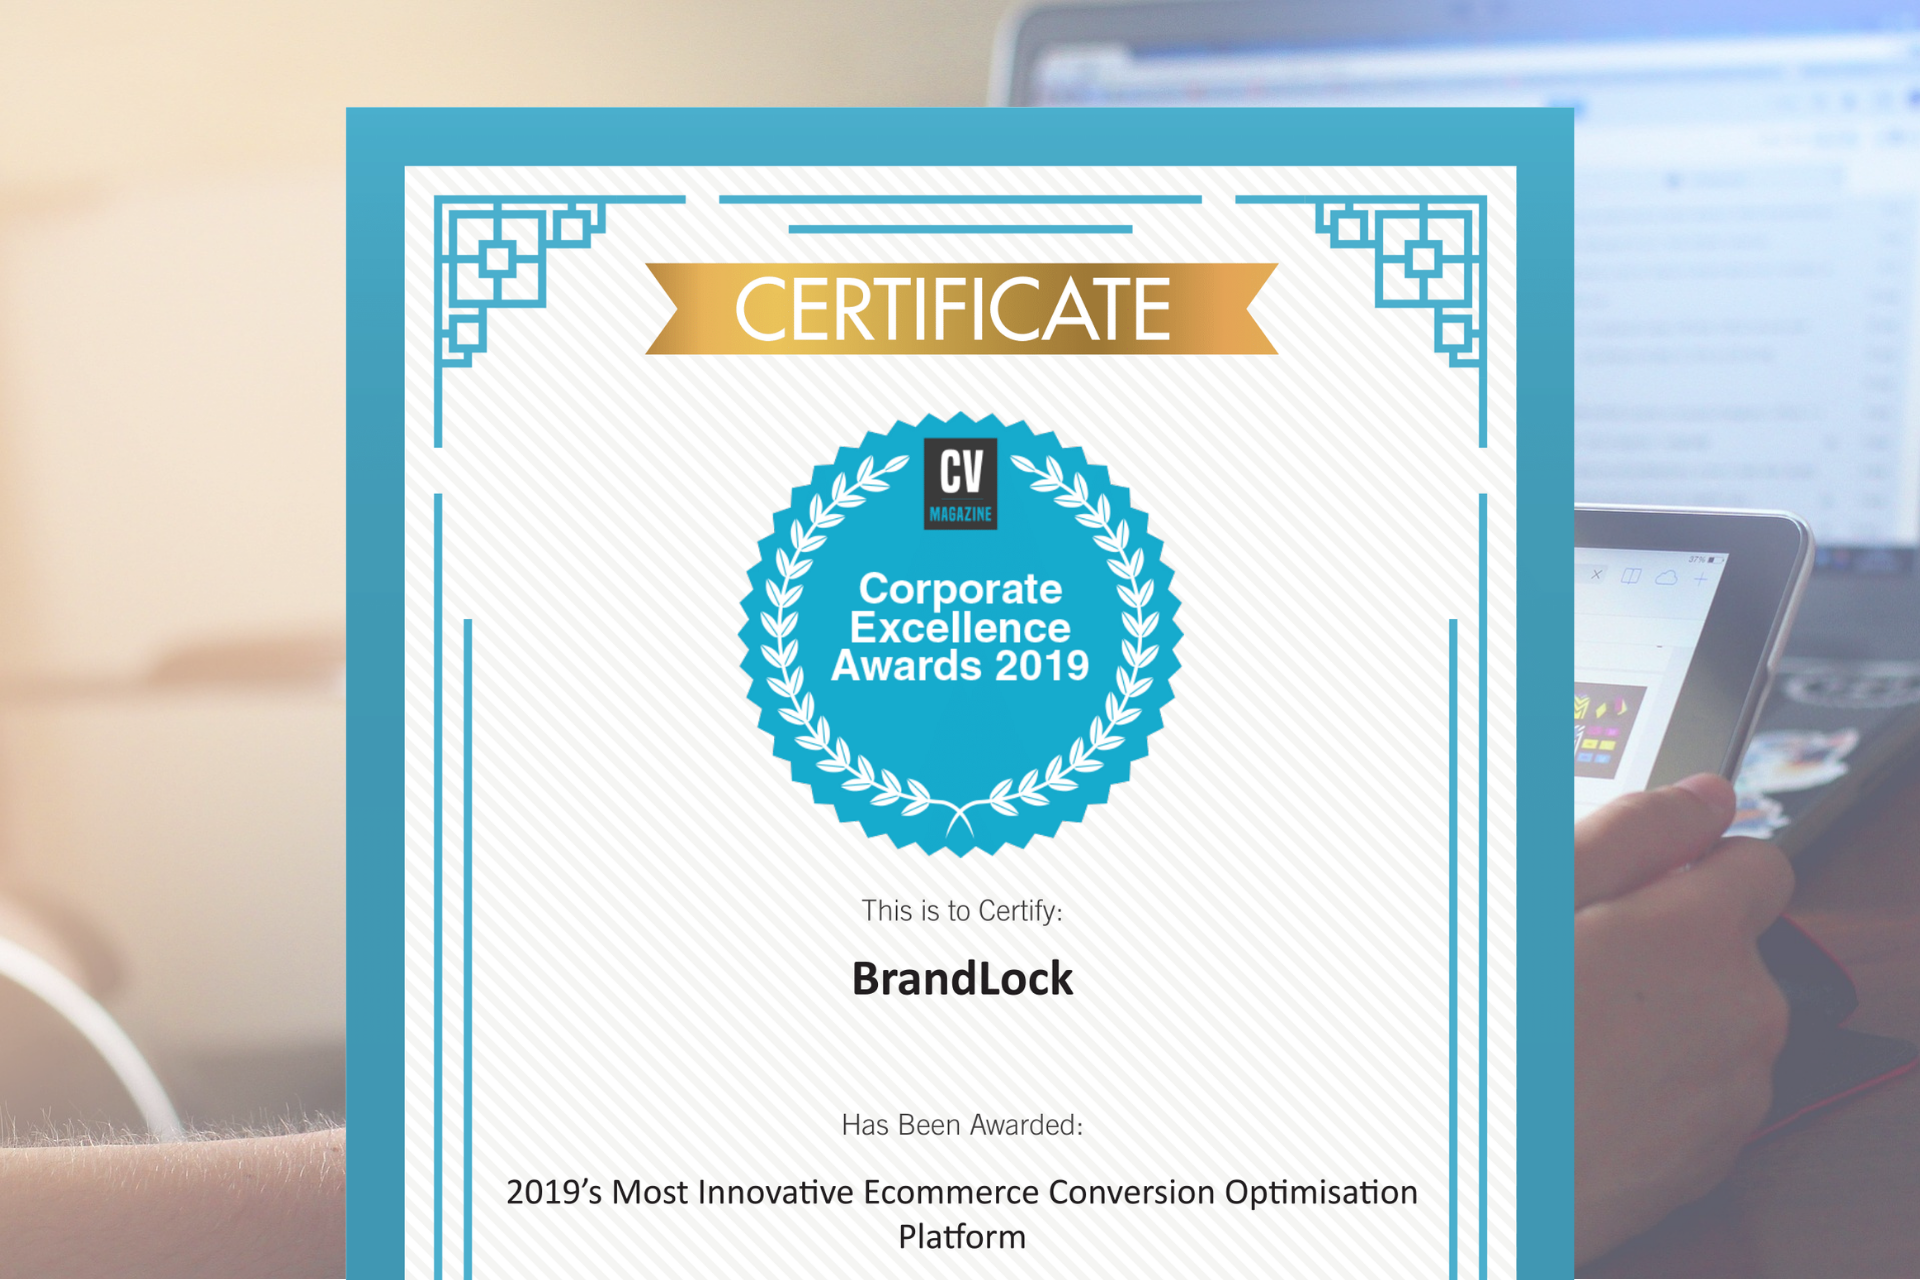 CV Magazine Names BrandLock 2019's Most Innovative Ecommerce Conversion Optimisation Platform